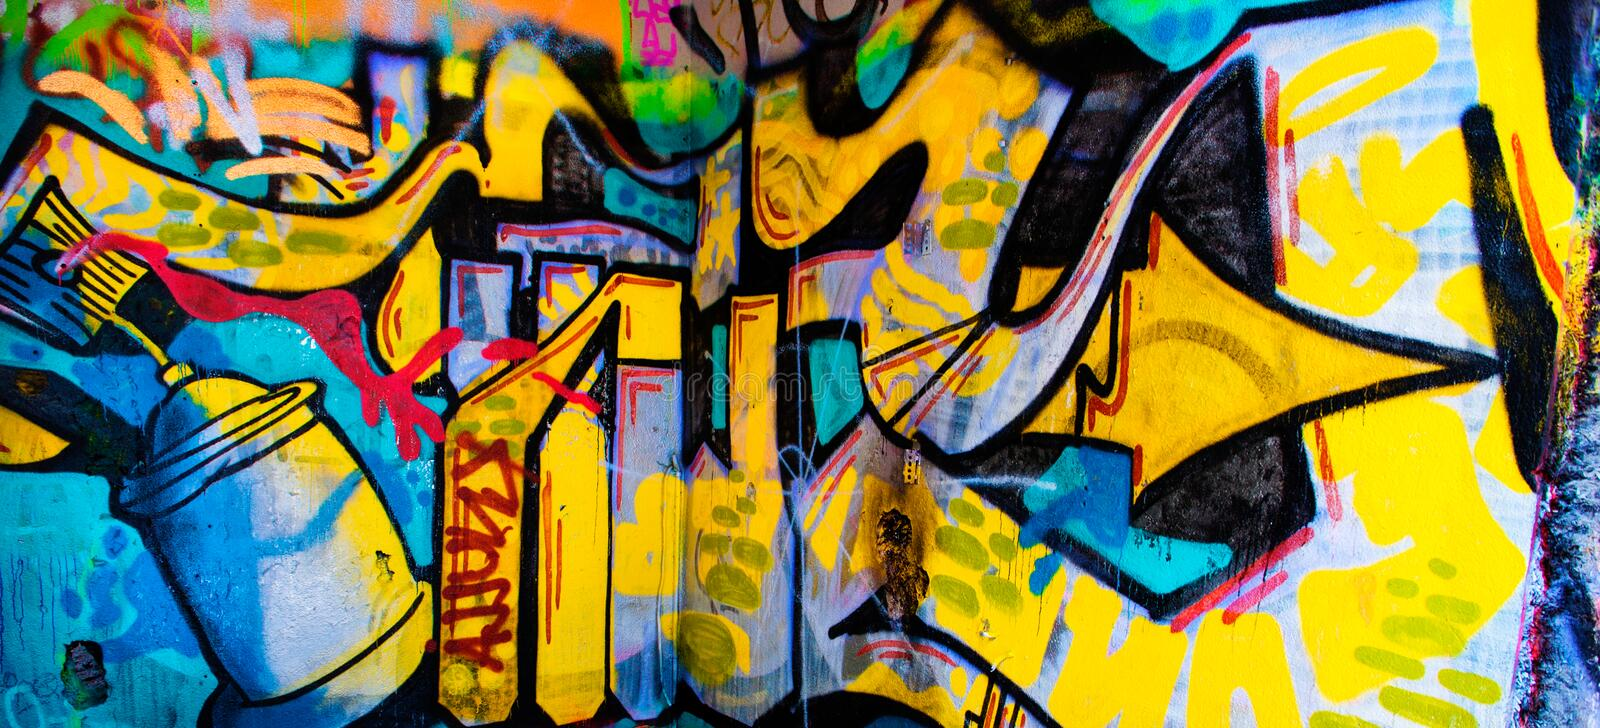 Fond de graffiti photo stock